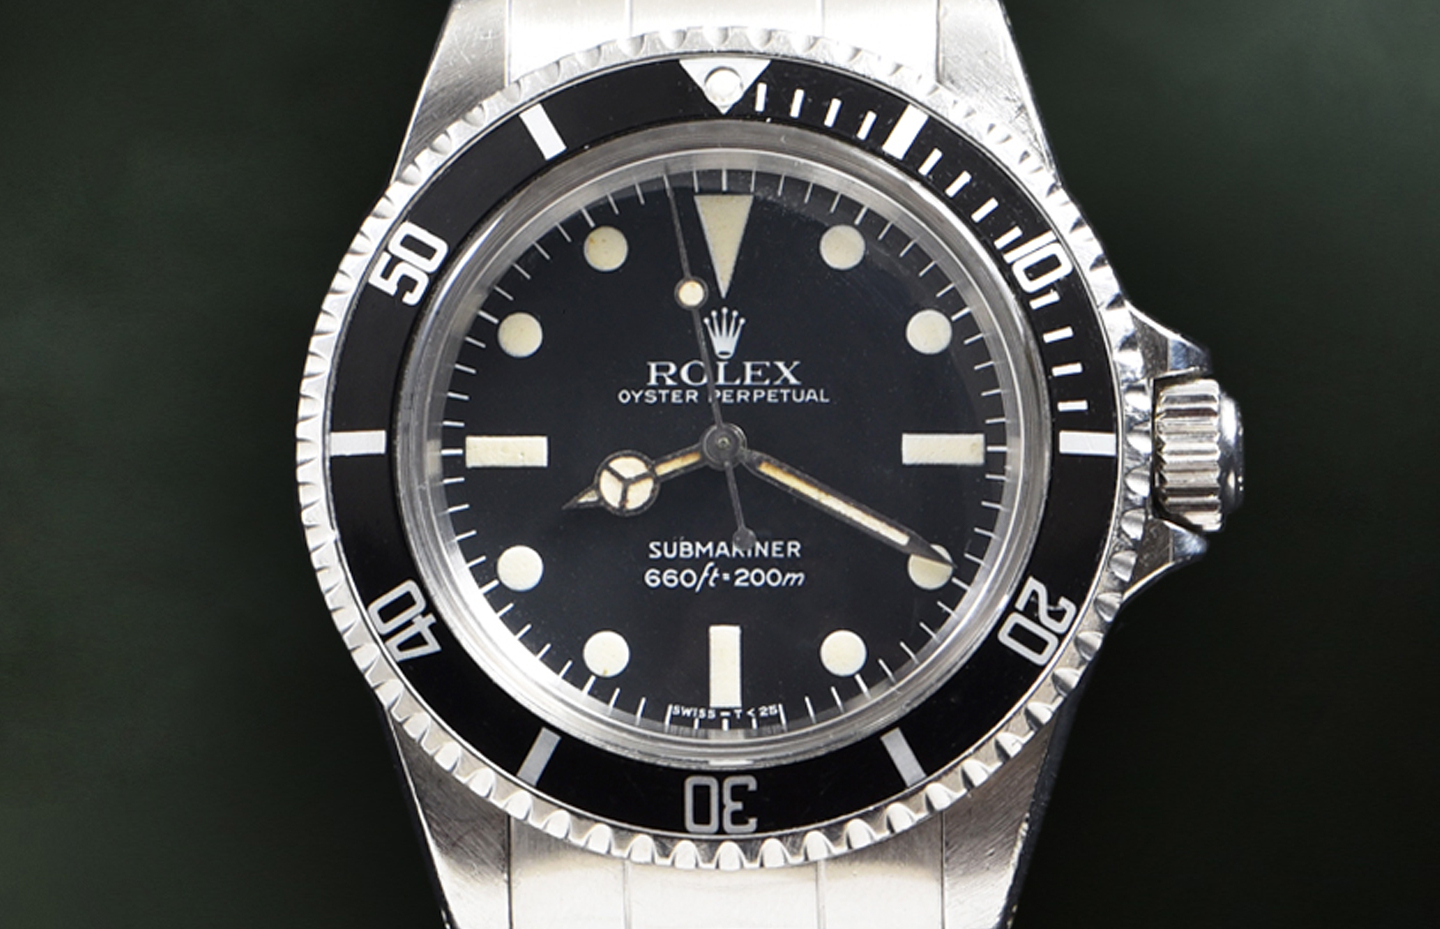 Rolex Submariner Maxi Dial Mark IV Ref. 5513